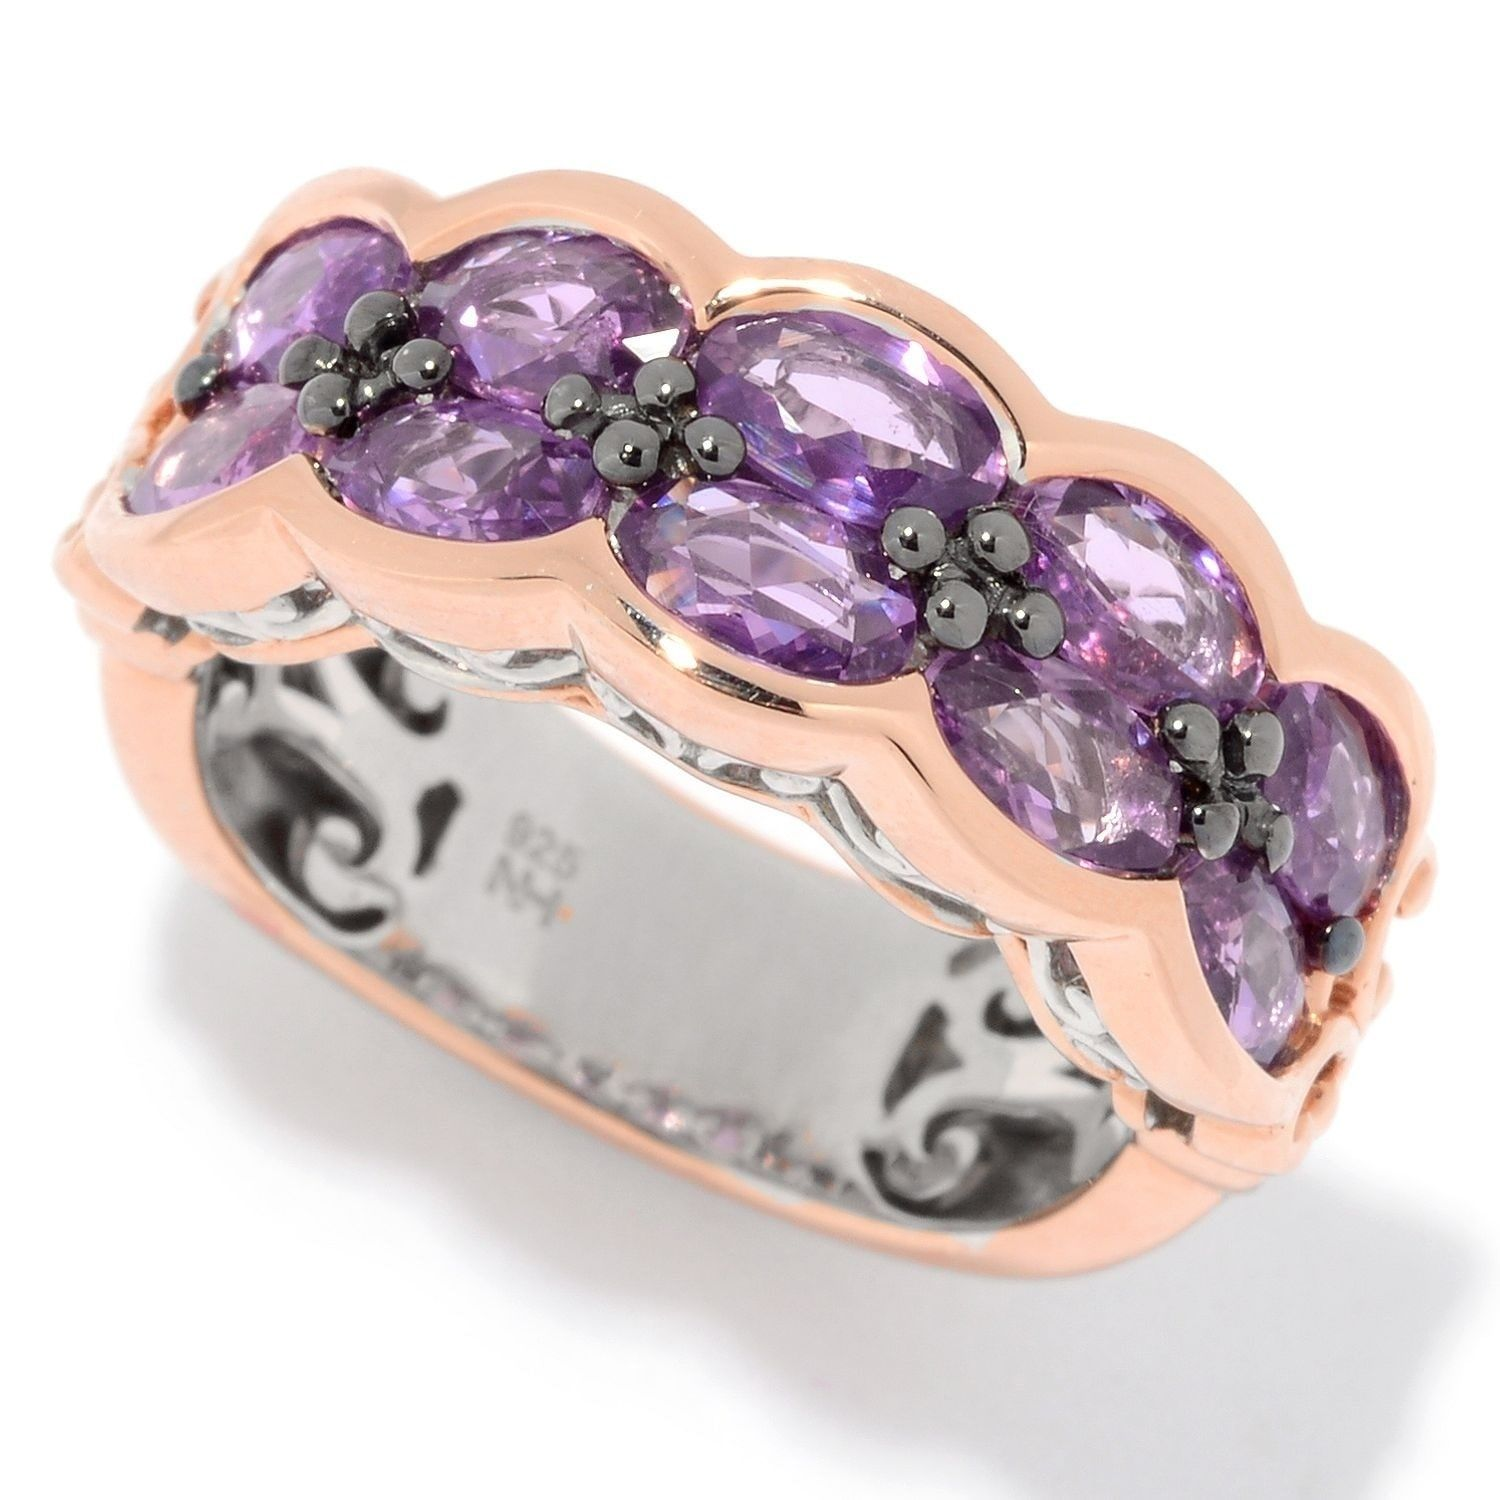 lavender cut fine gems lilac corundum dimensions stone natural carats pink blush img guaranteed ceylon color home gemstones weight sapphire product